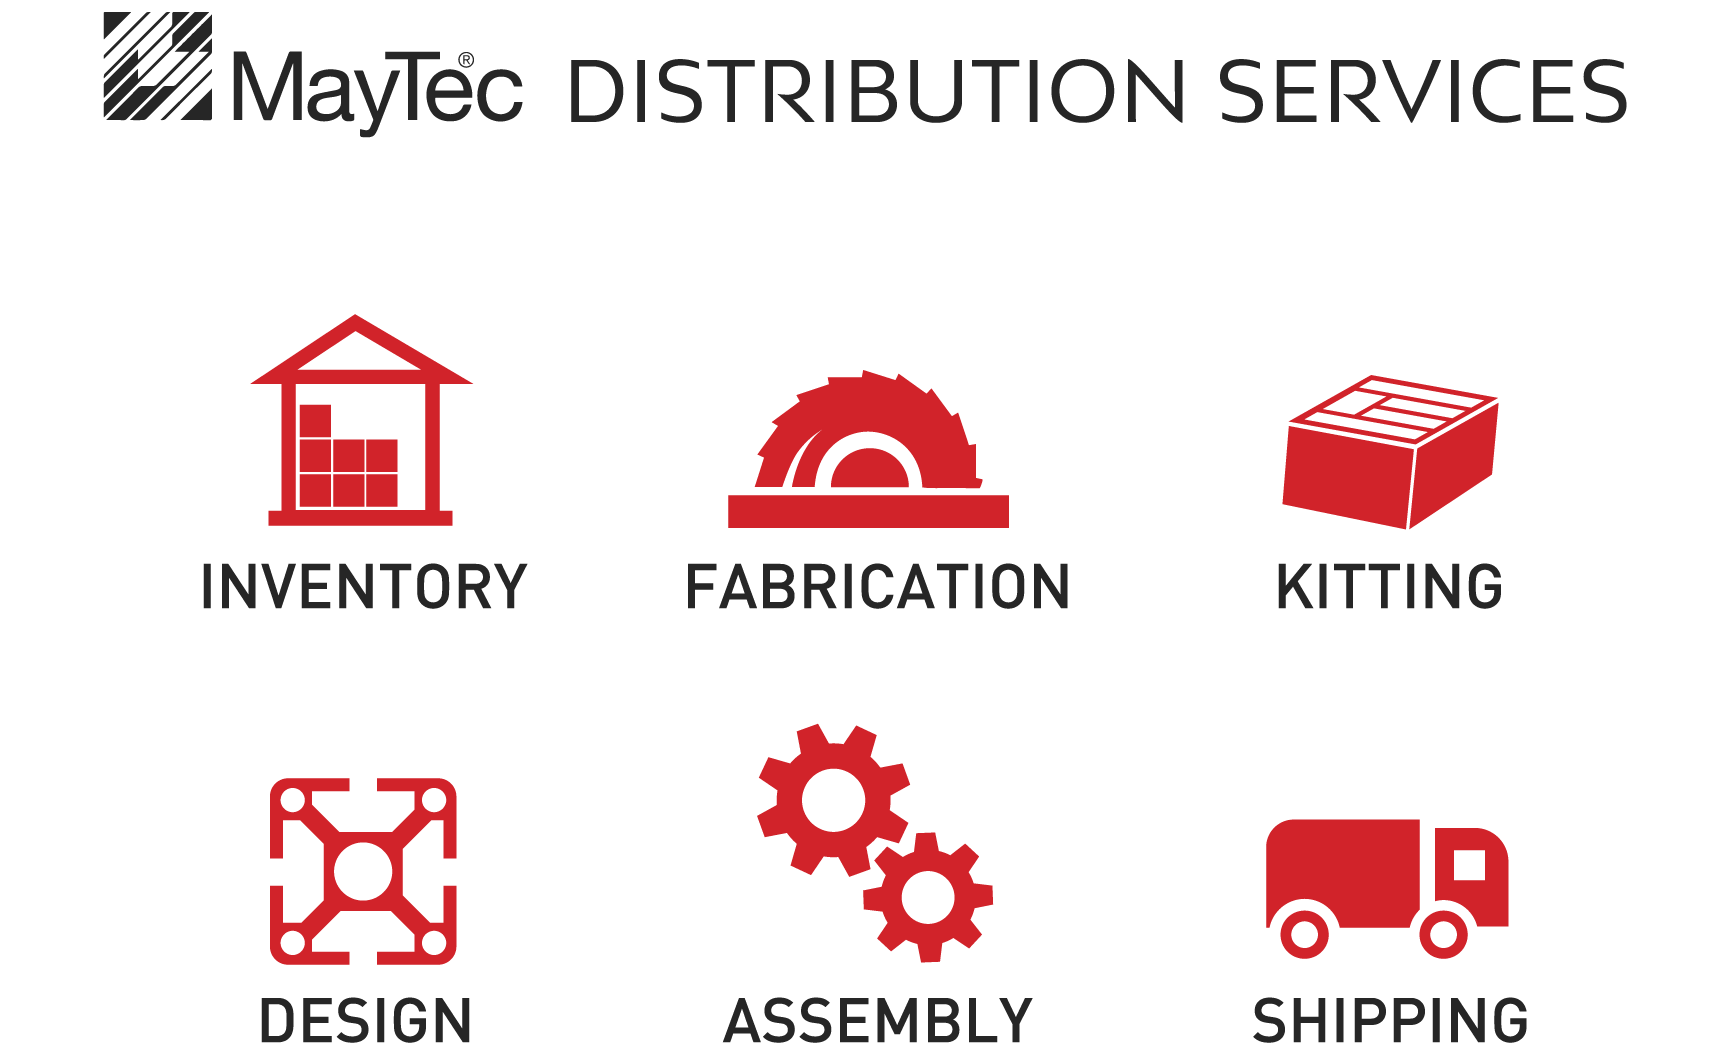 Fitz-Thors-Engineering_MayTec-Distributor_Birmingham-AL_icon_MayCad_Services-icons.png